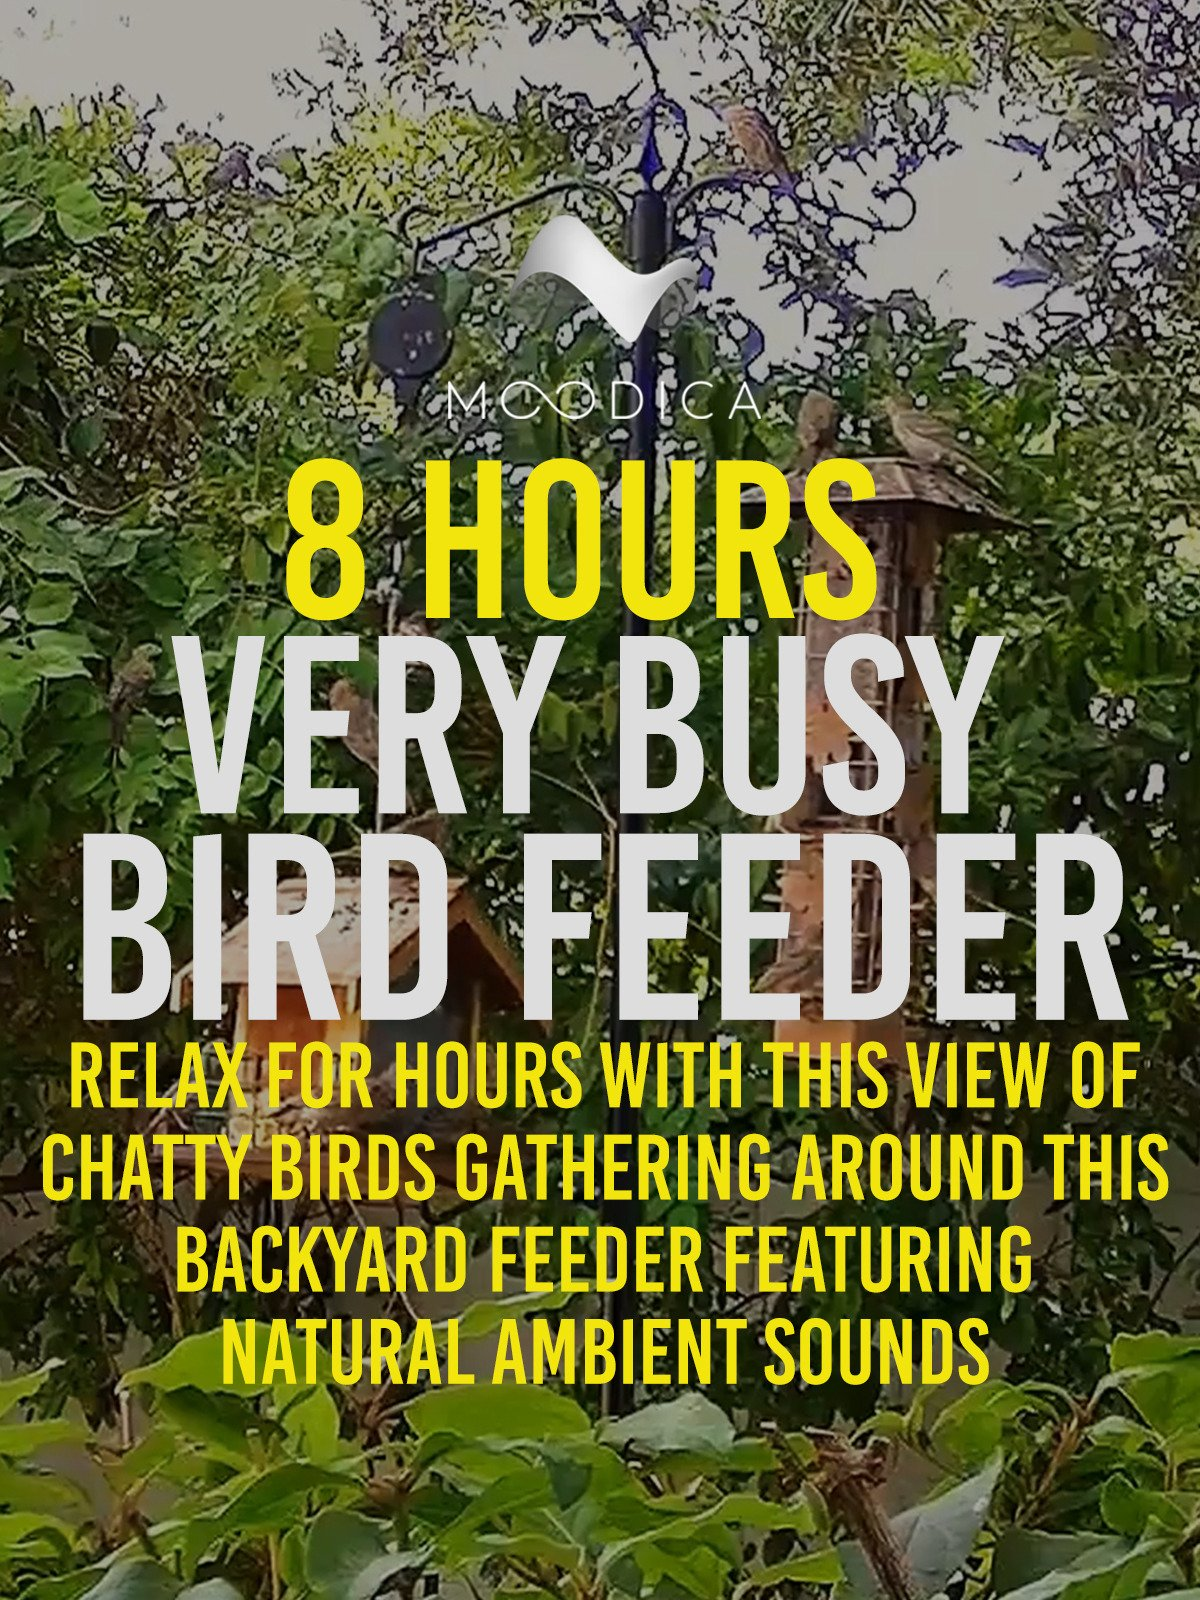 8 Hours: Very Busy Bird Feeder: Relax For Hours With This View of Chatty Birds Gathering Around This Backyard Feeder Featuring Natural Ambient Sounds